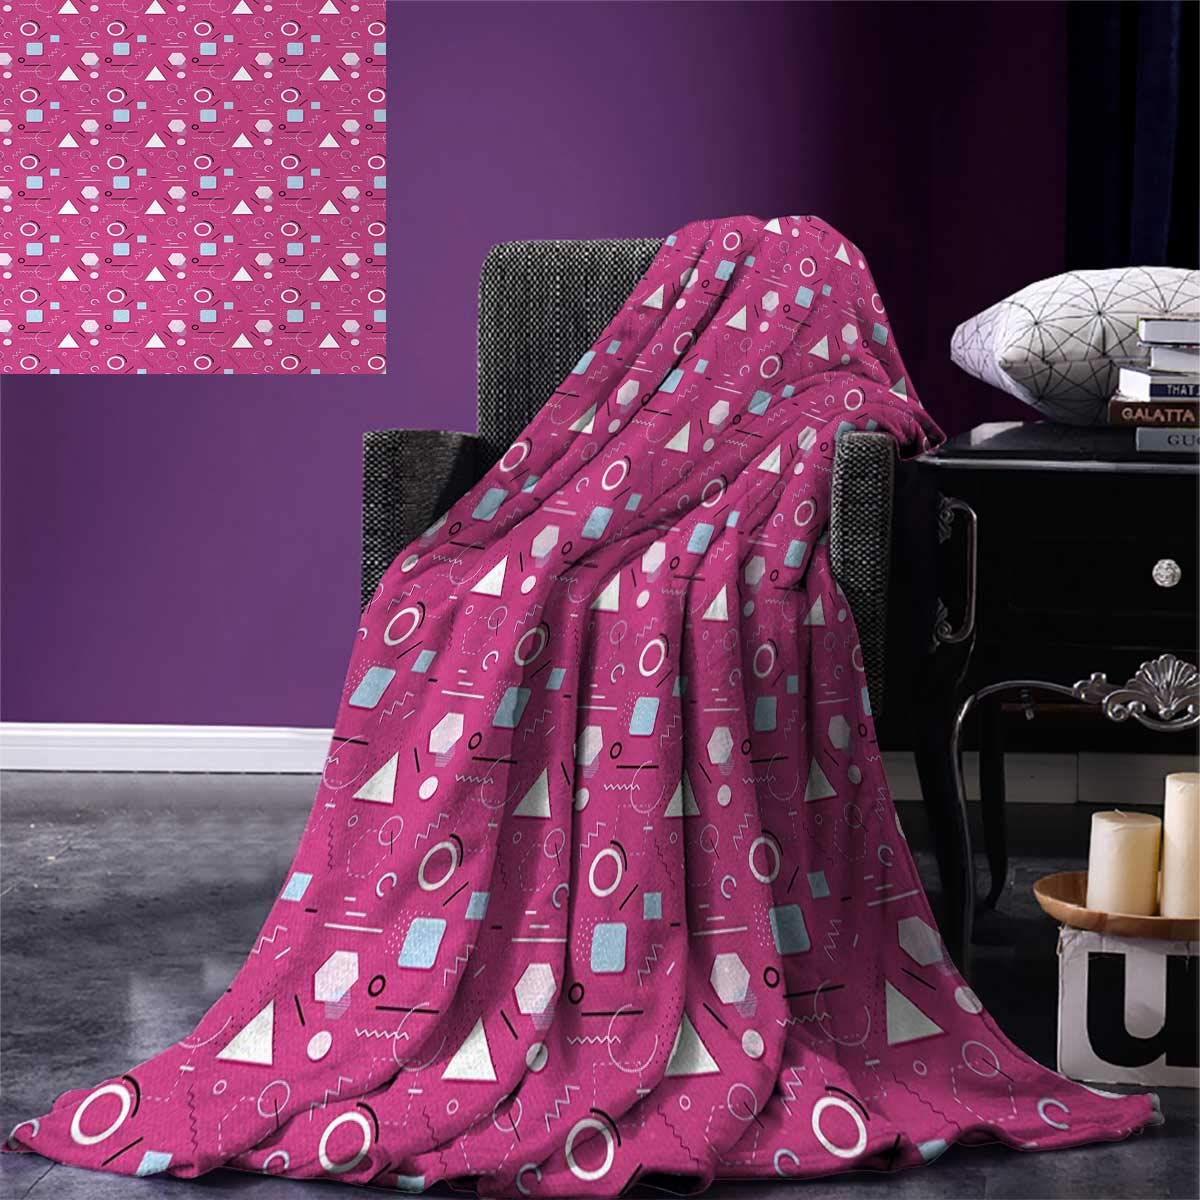 Geometric Digital Printing Blanket Vintage Memphis Style Triangles Hexagons and Squares Eighties Design Summer Quilt Comforter 80''x60'' Pink Pale Blue Black